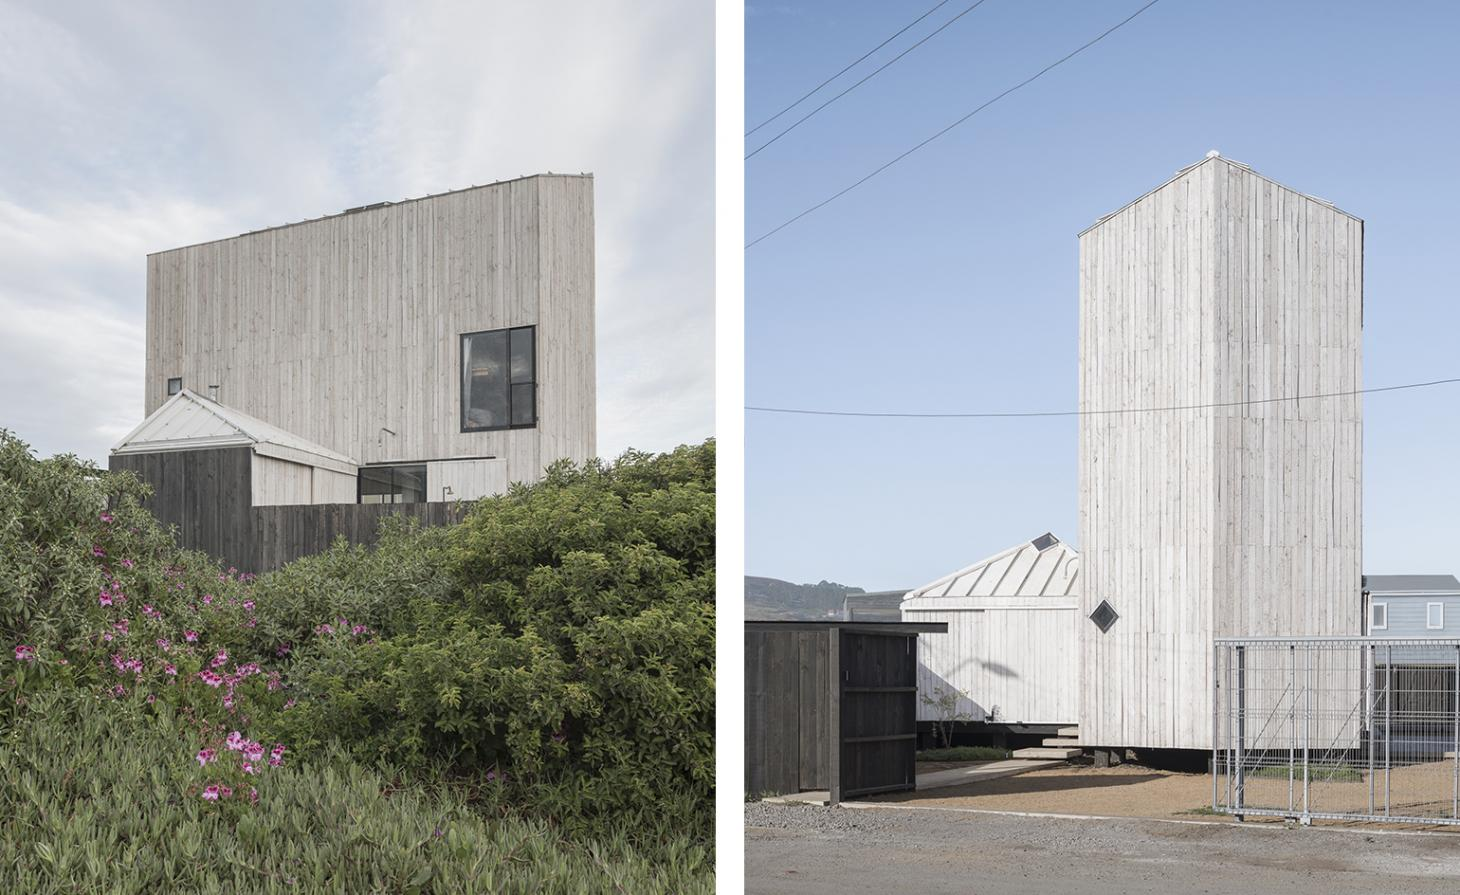 Two images of El Gauchal architect-designed beach huts in Chile